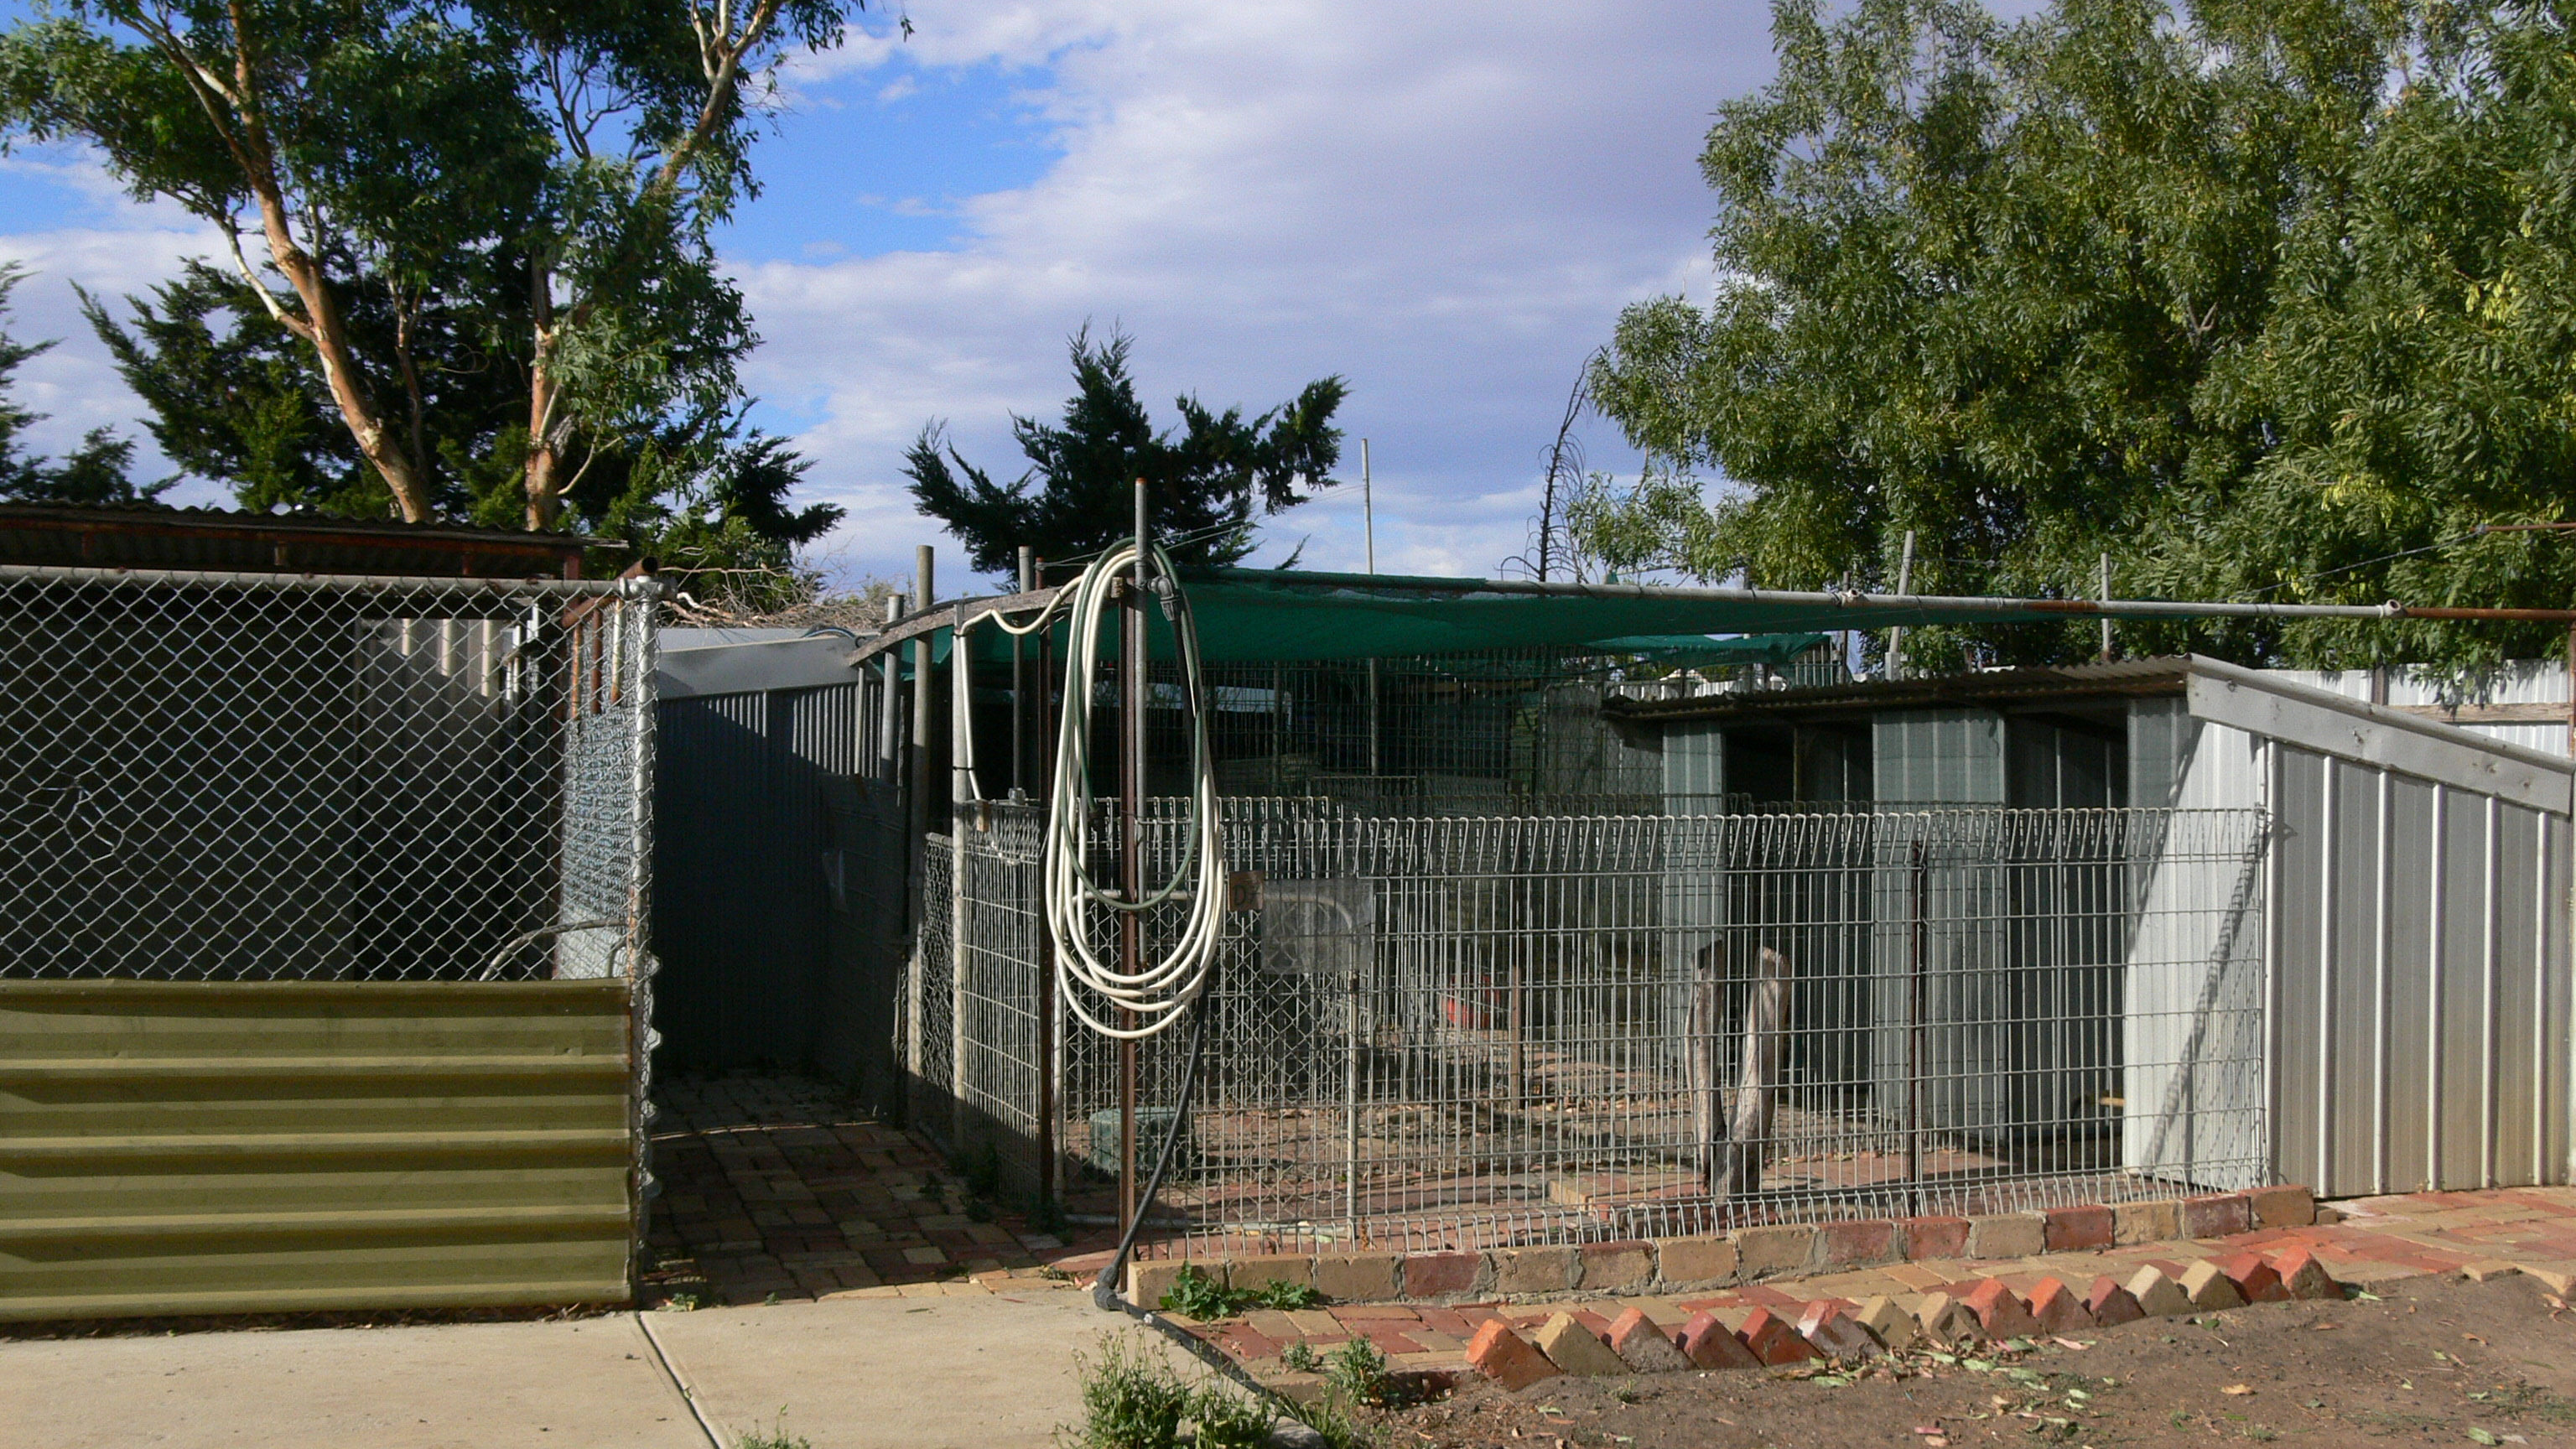 Prisma pro interior plat series amp tech series - Sampenny Dog Kennels And Cattery Melbourne Some Outdoor Areas